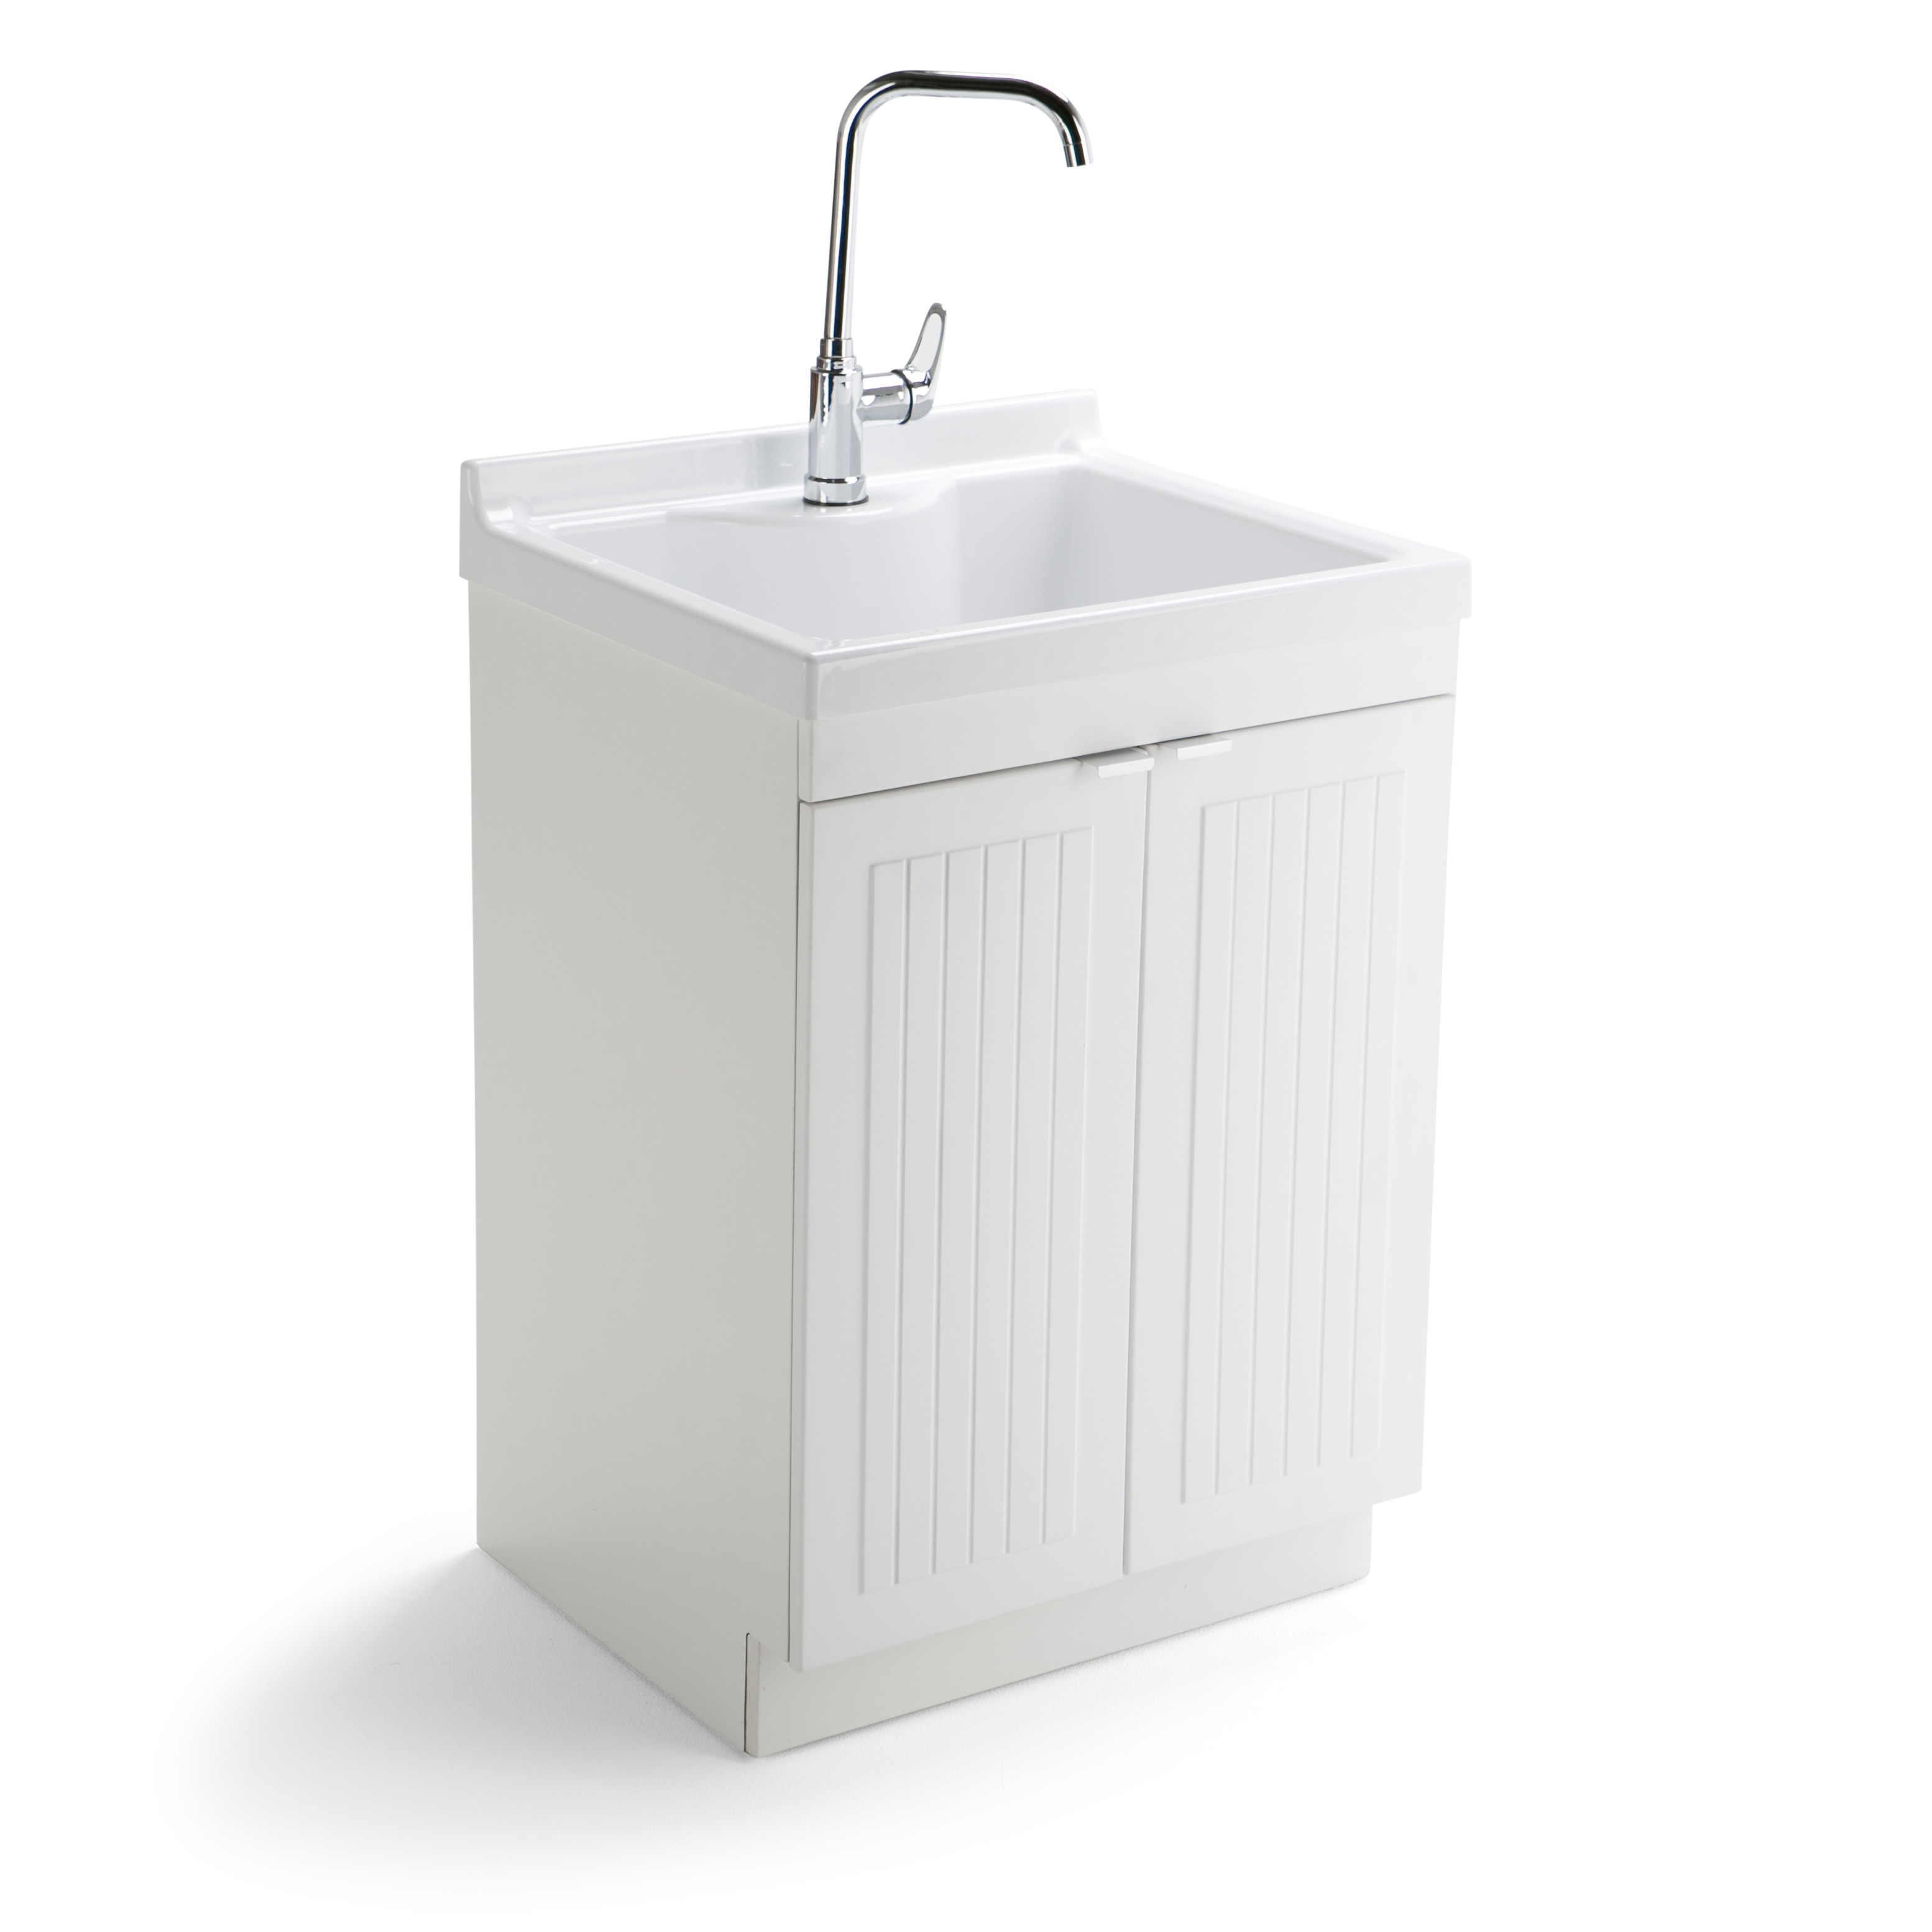 wyndenhall bishop traditional 24 inch laundry cabinet with faucet and abs sink 24 w x 47 8 h x 20 5 d